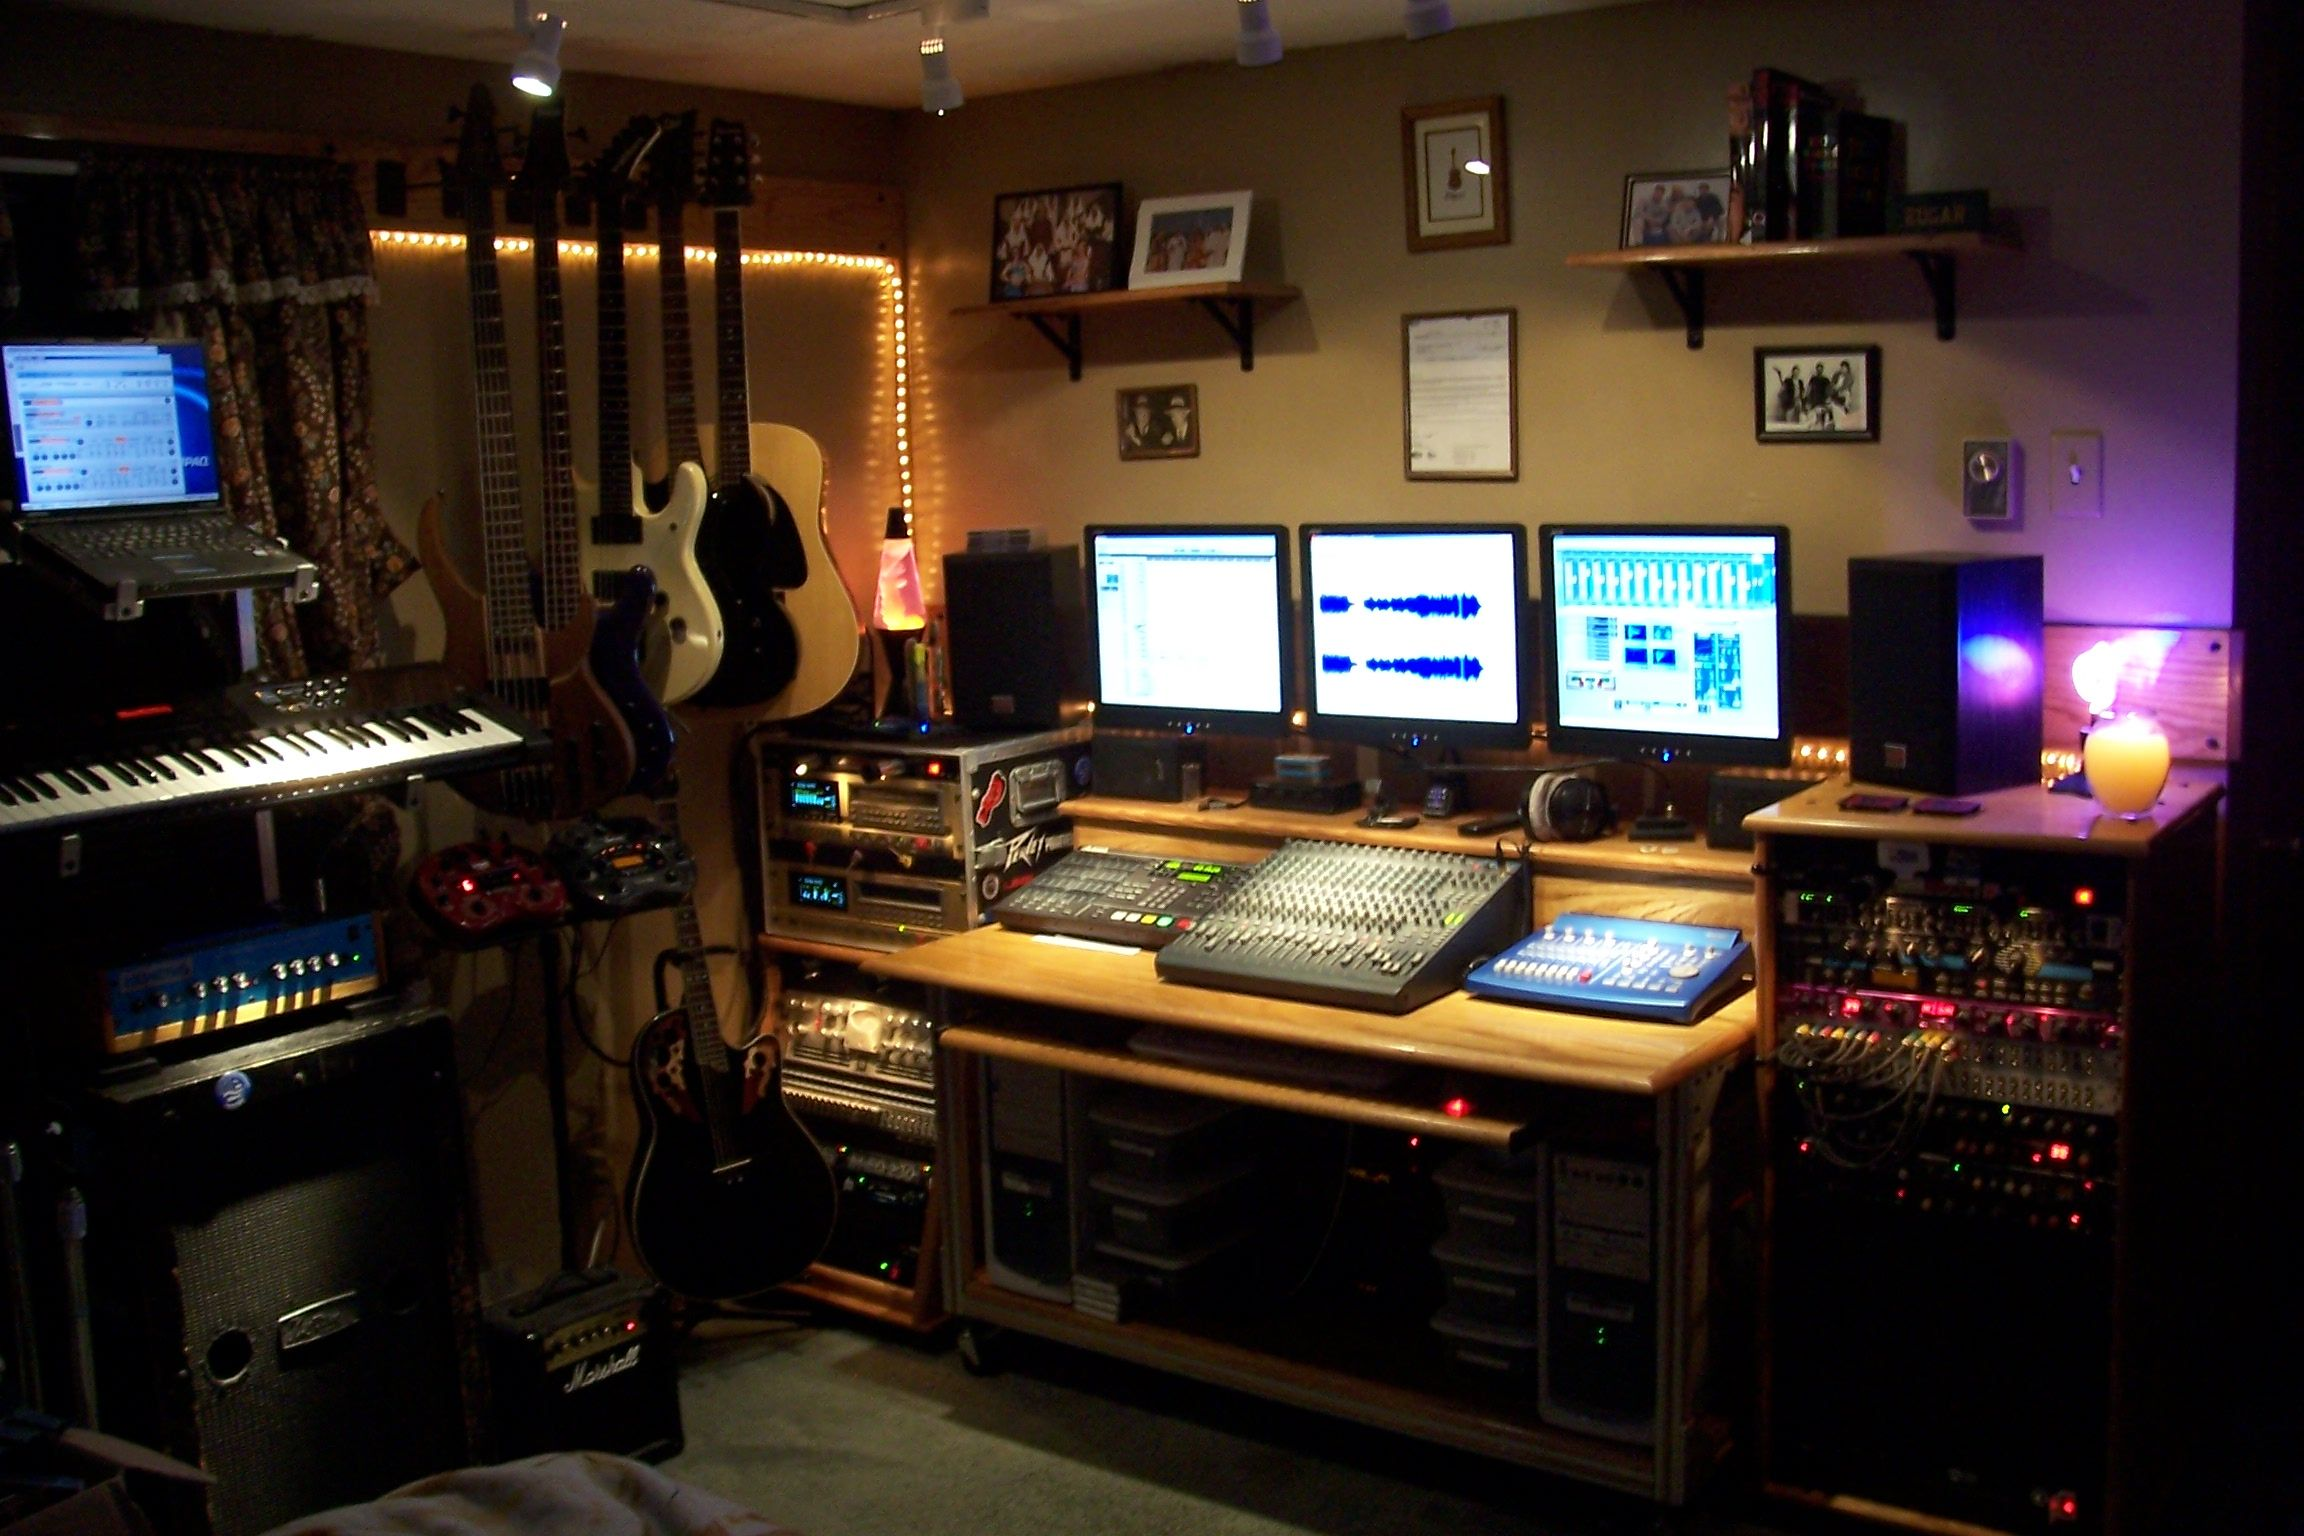 Sensational How To Set Up A Simple Recording Studio At Home Music Rooms Largest Home Design Picture Inspirations Pitcheantrous